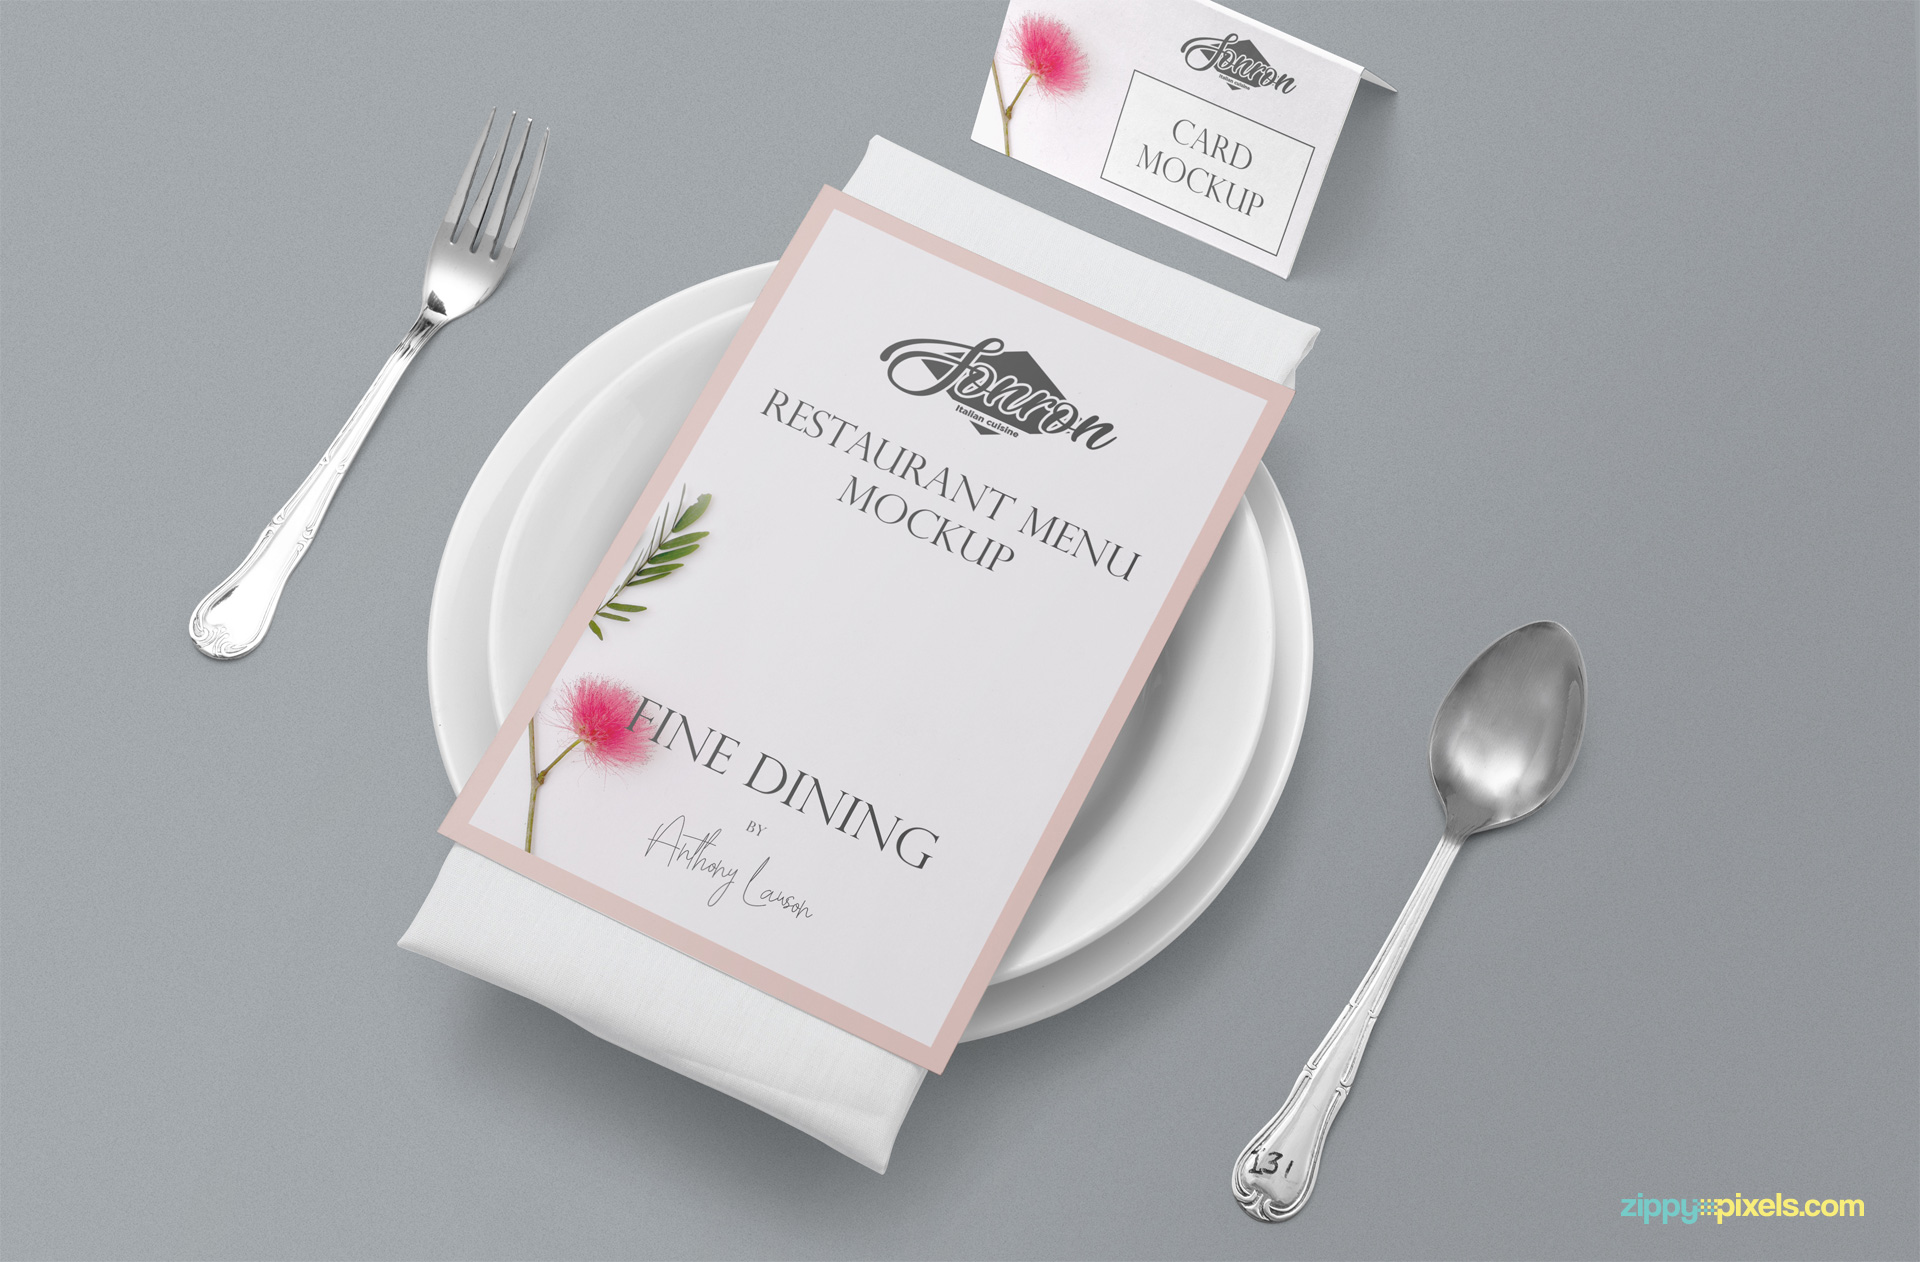 Free restaurant menu card mockup.